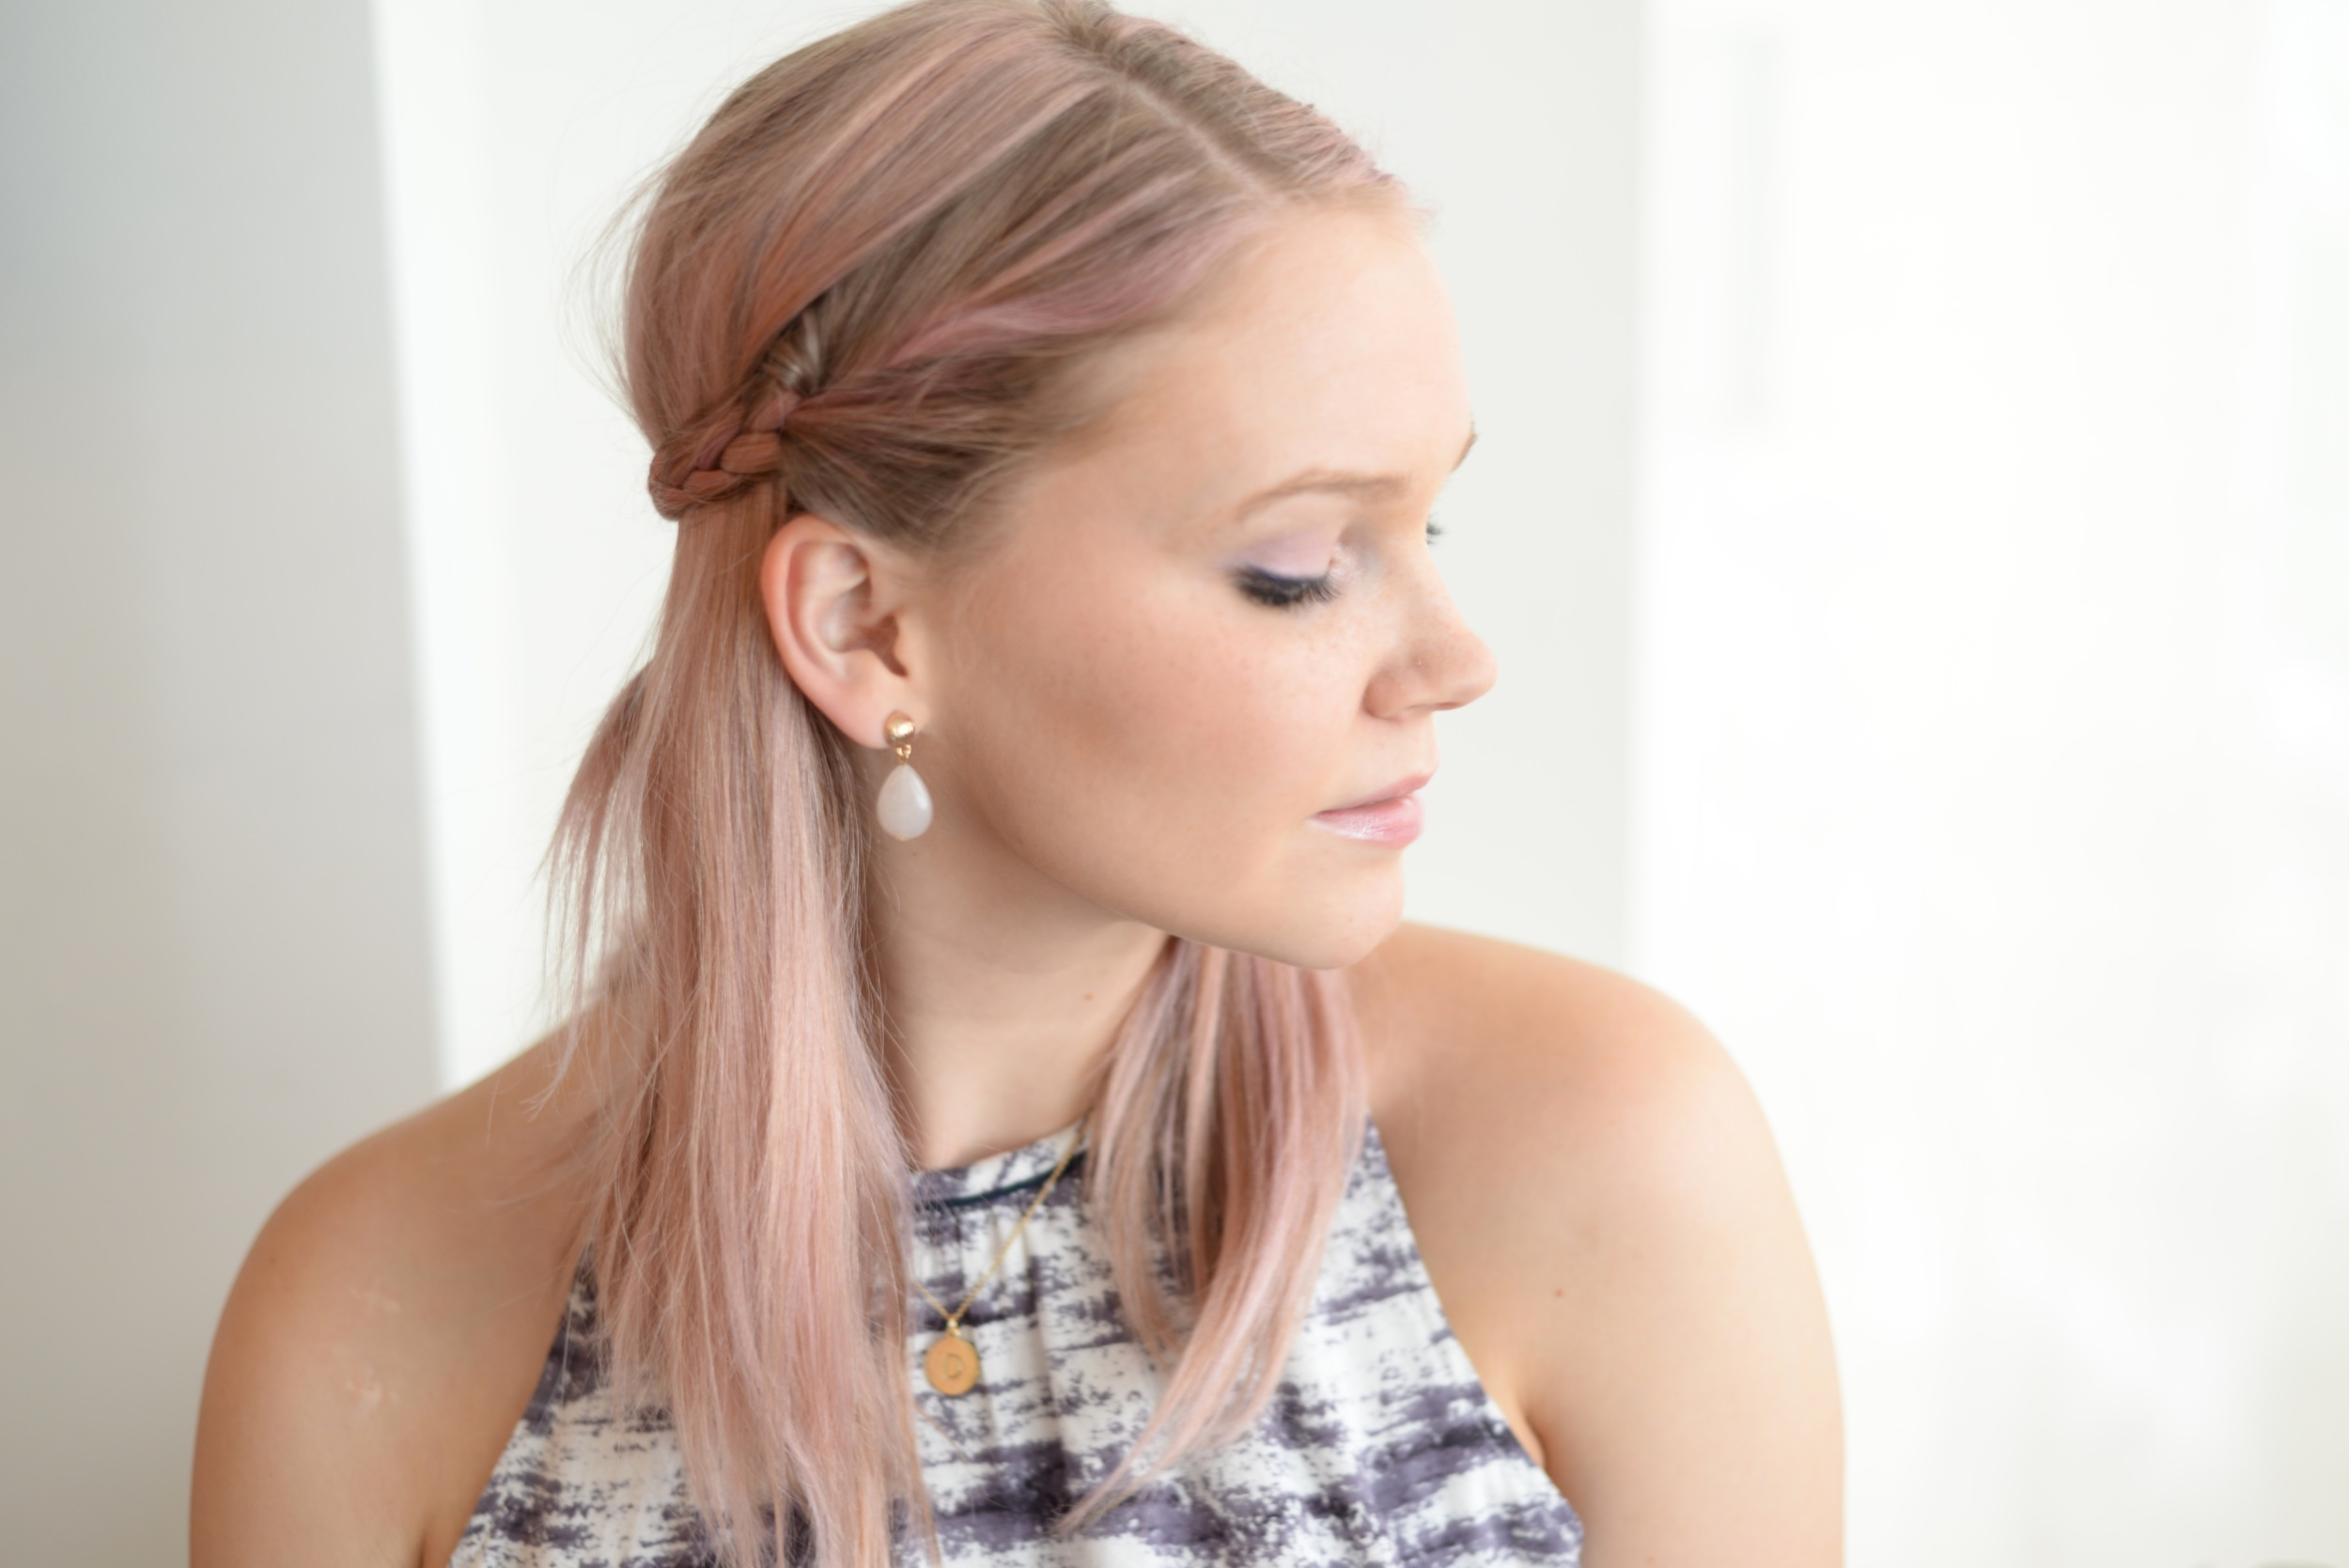 nars makeup, pastel hair